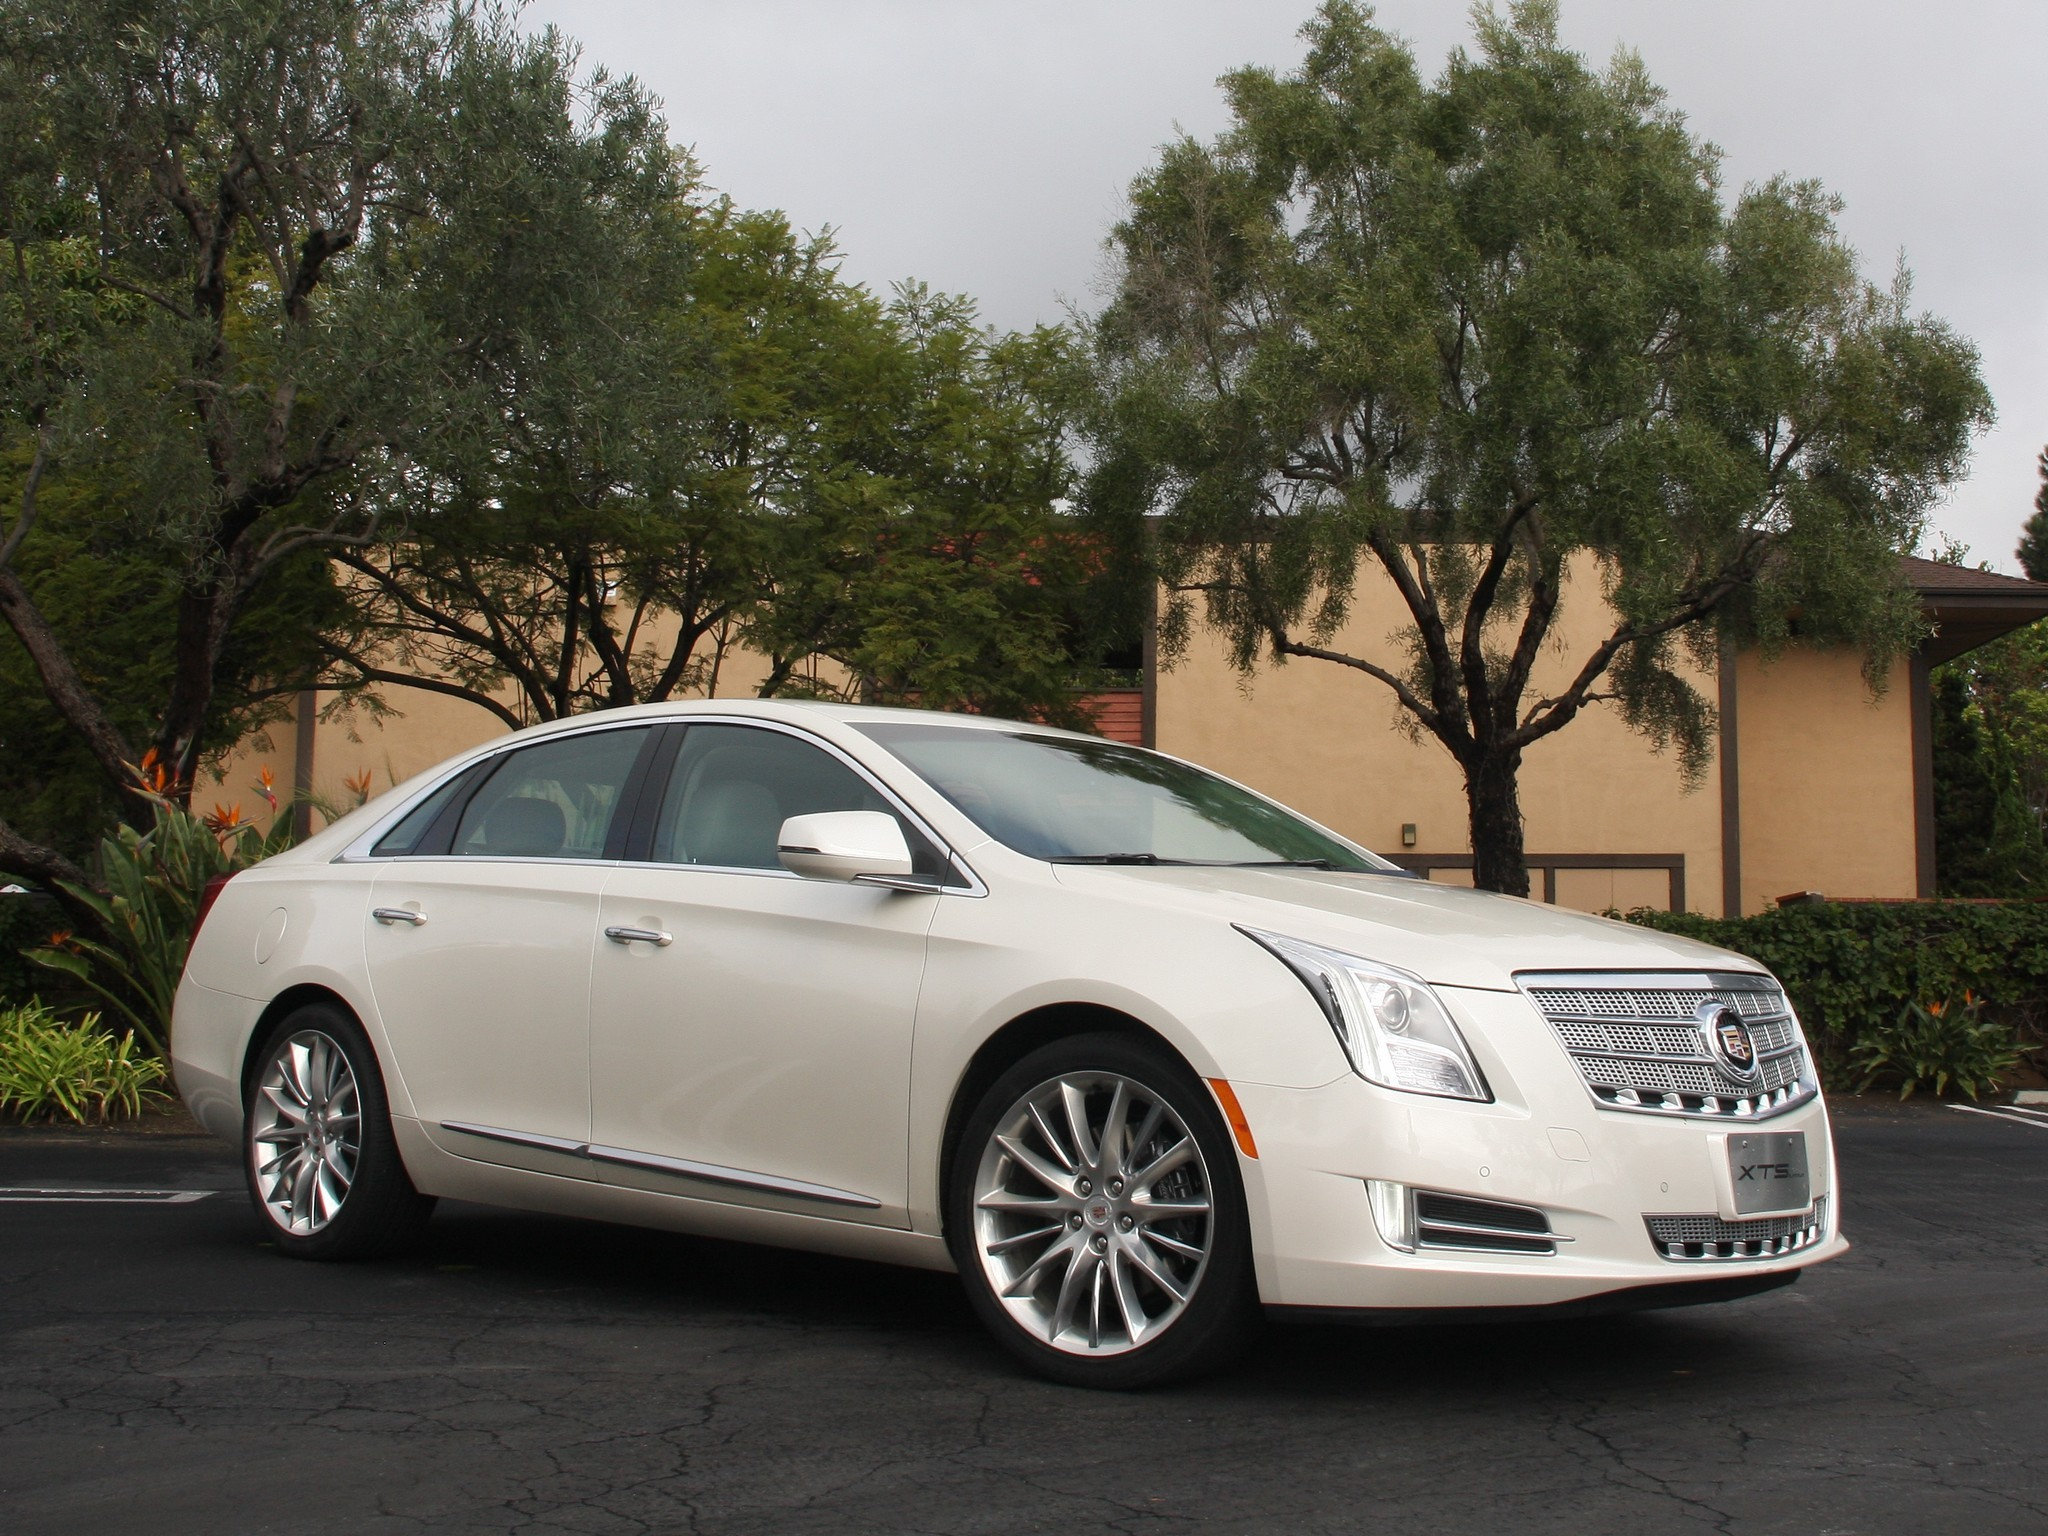 Cadillac Xts Specs  U0026 Photos - 2013  2014  2015  2016  2017